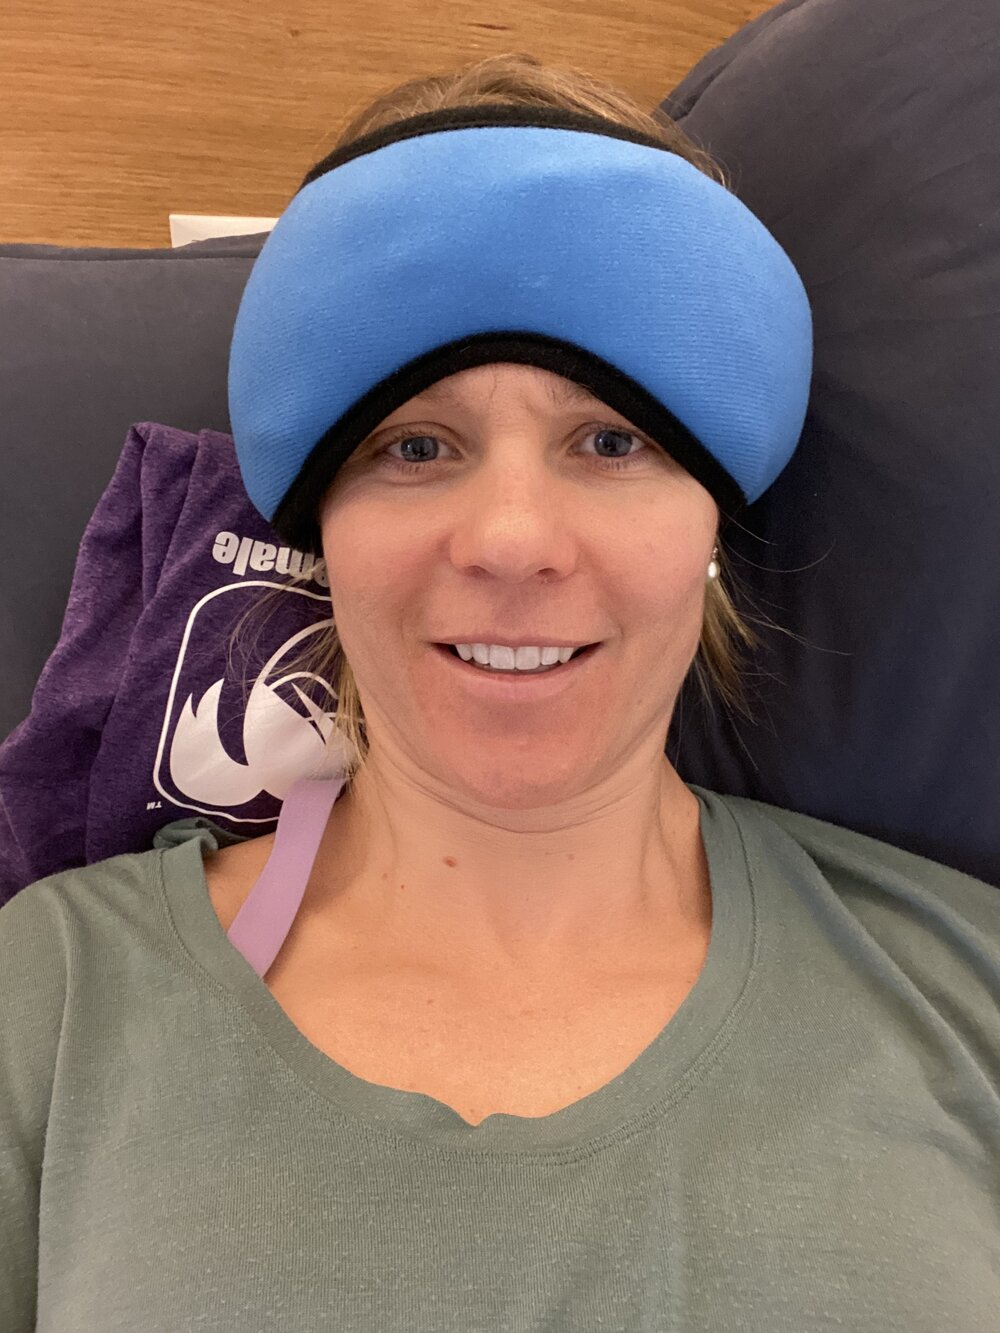 Tour de Ski… where you do weird things like wear heating pads on your head because you are nervous…. and you give yourself headaches!